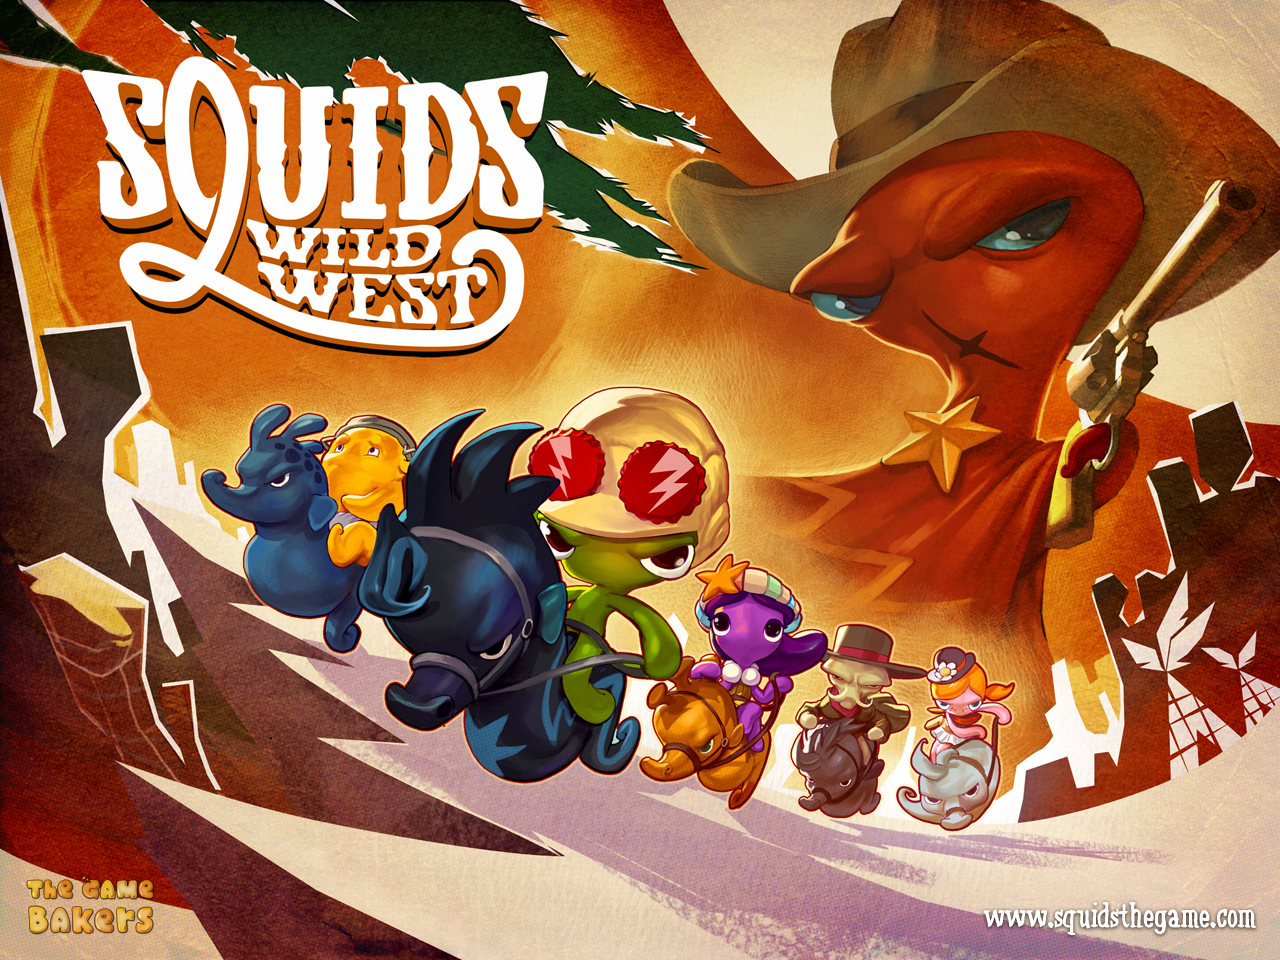 "Buck Up Kiddo, ""SQUIDS Wild West"" Rides Into Town This Summer"